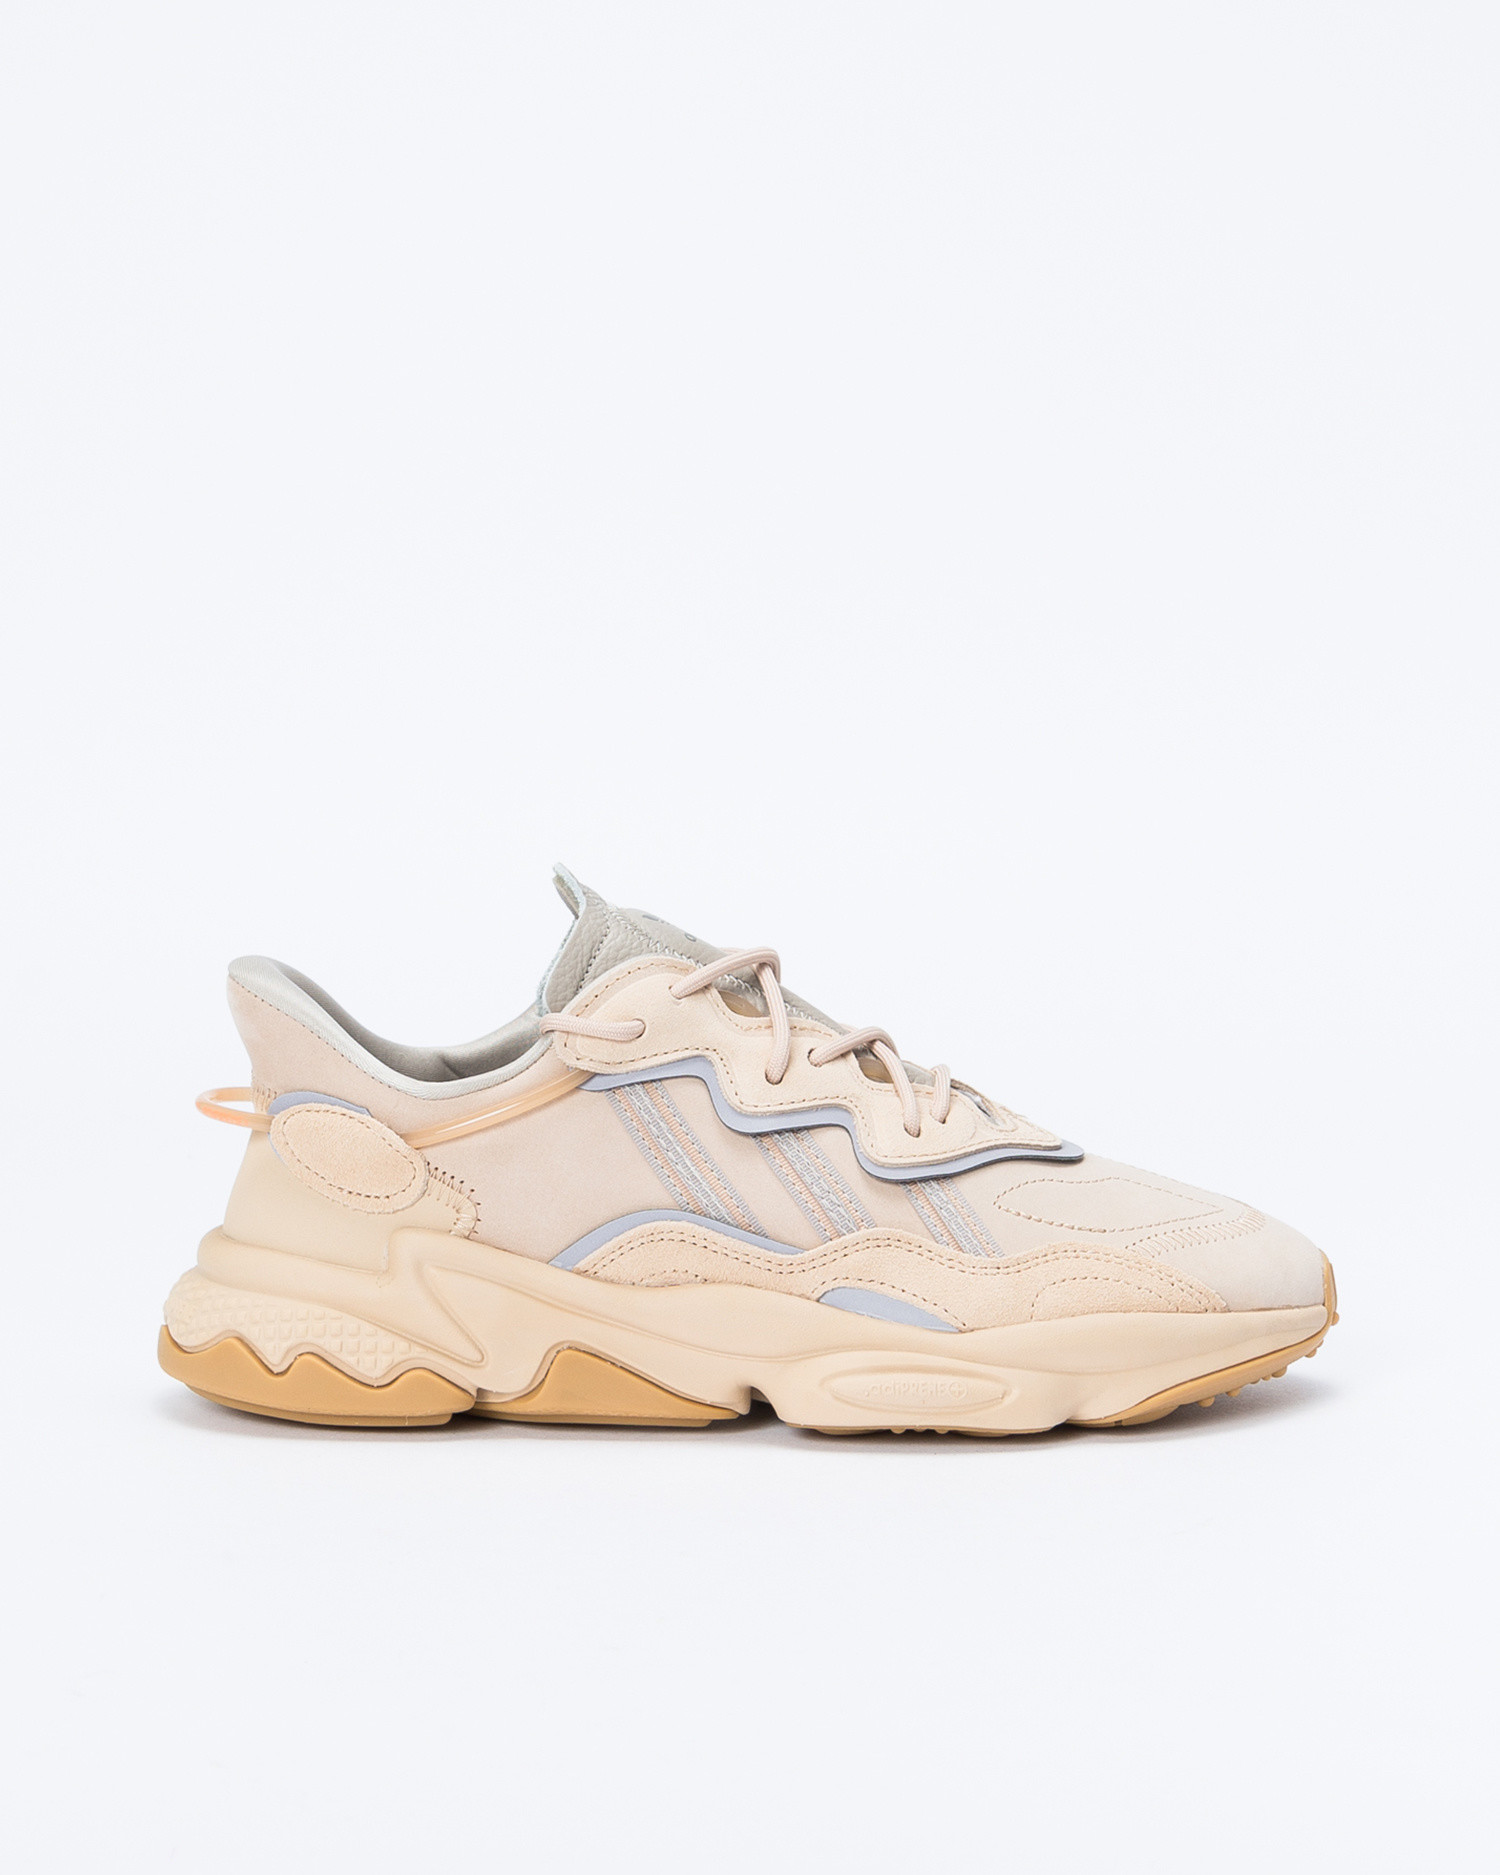 Adidas Ozweego ST Pale Nude/ Light Brown / Solar Red